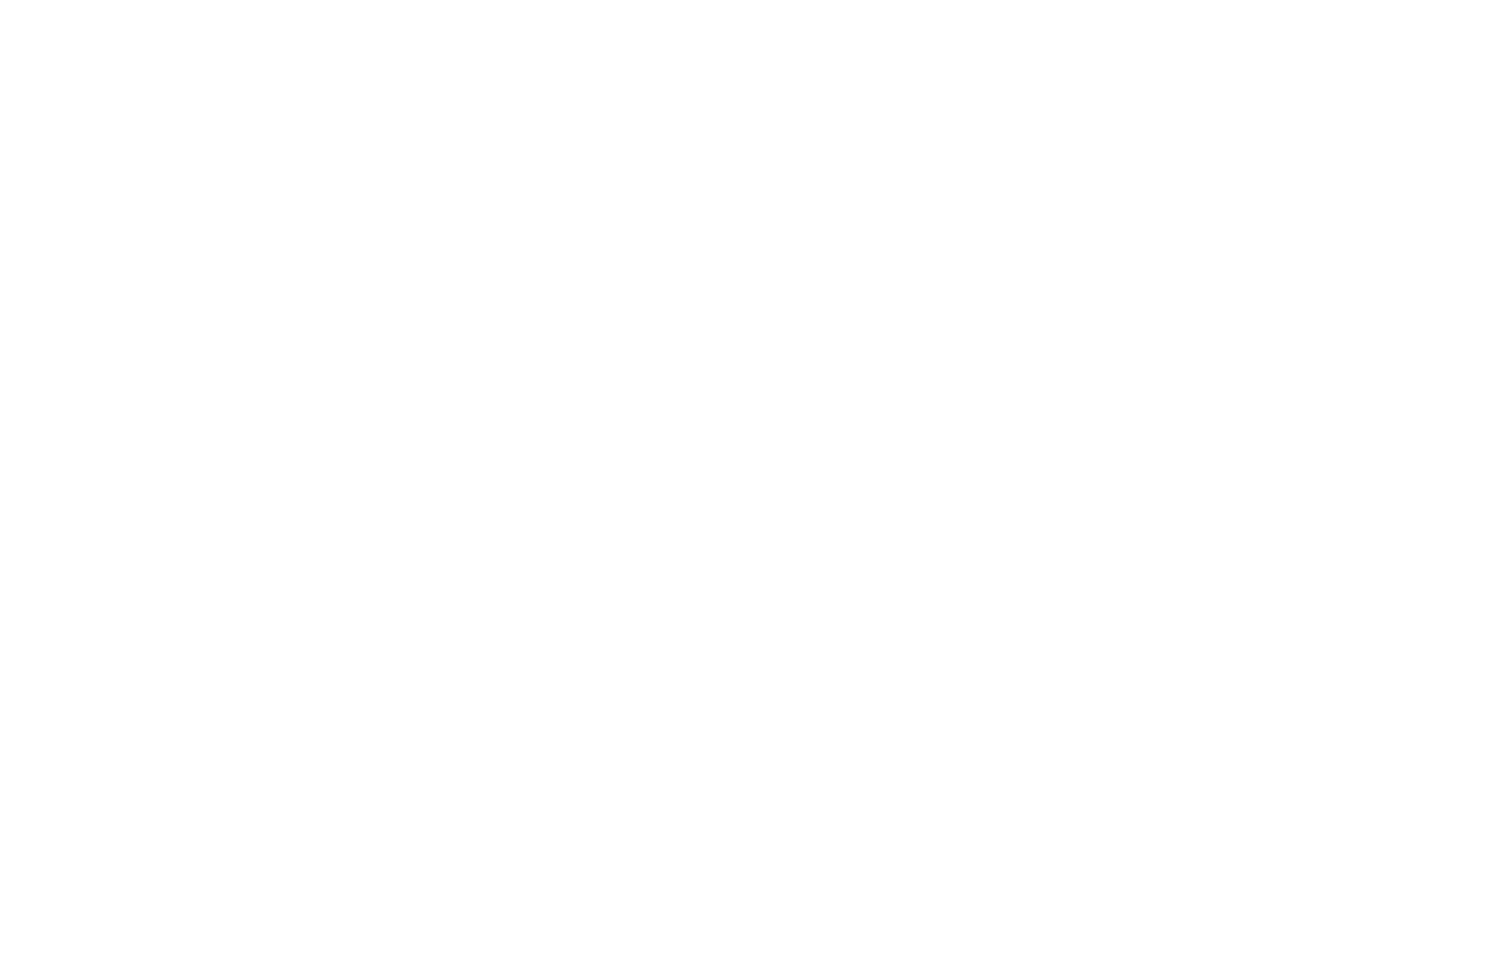 Redstream Digital